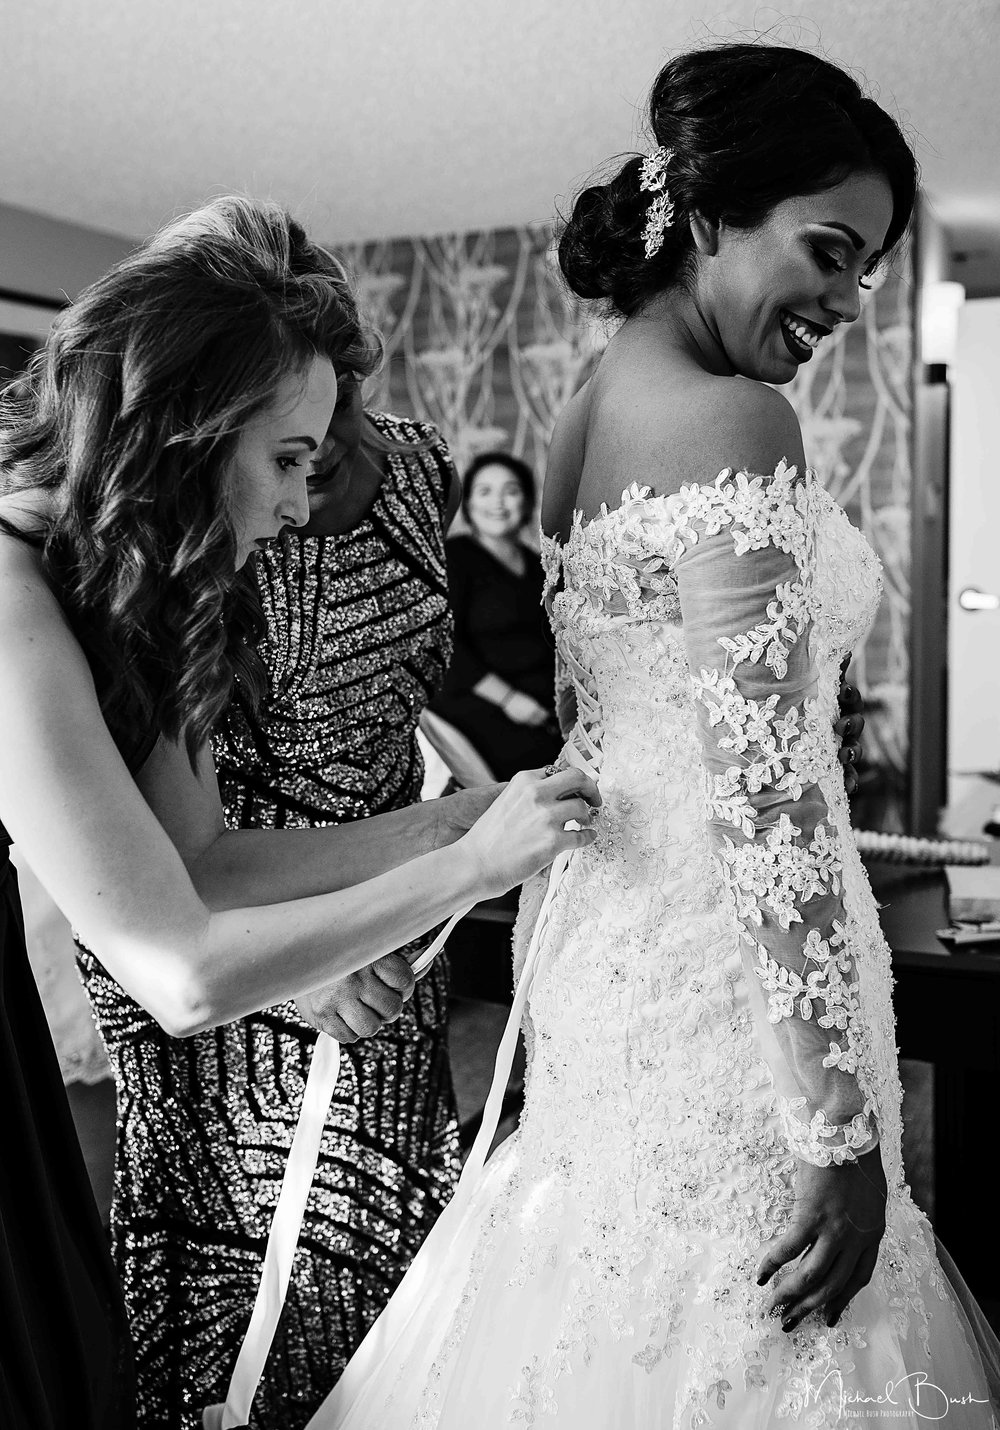 Wedding-Details-Bride-Fort Worth-colors-Getting Ready-MUA-brides-mercedes-dresson-fashion.jpg